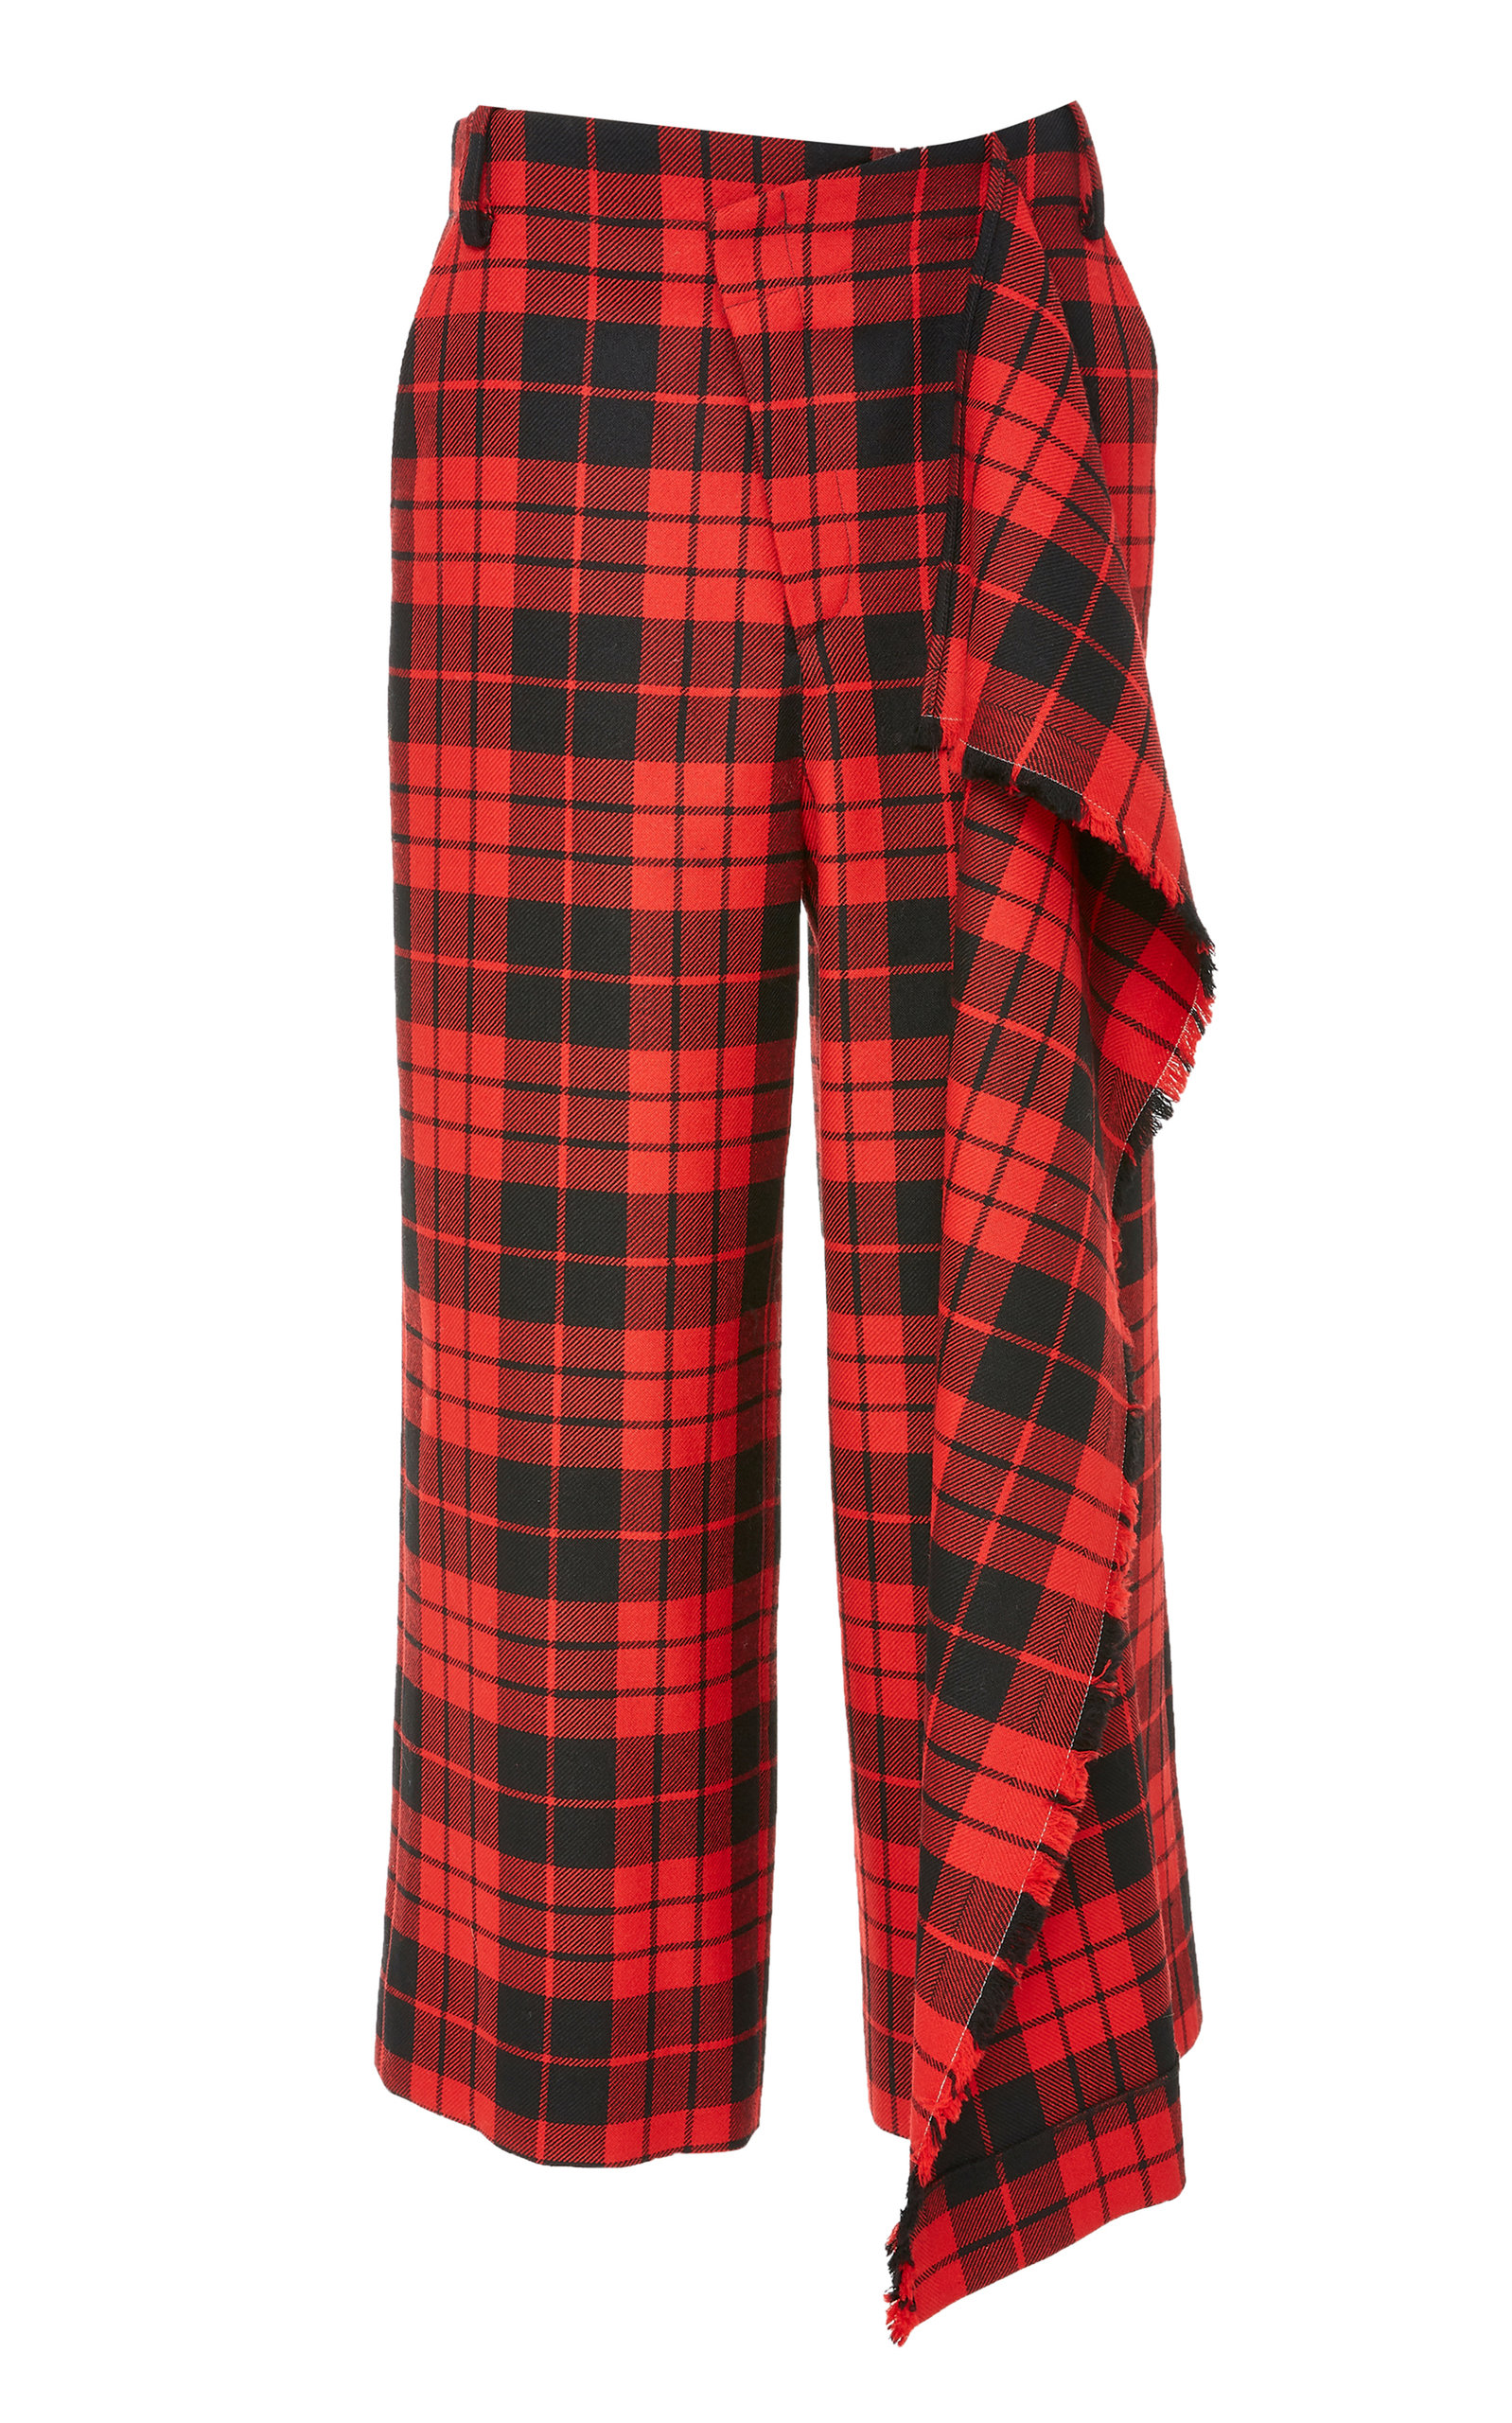 Cascade Slit Flared-Leg Wool Tartan Culotte Pants in Red